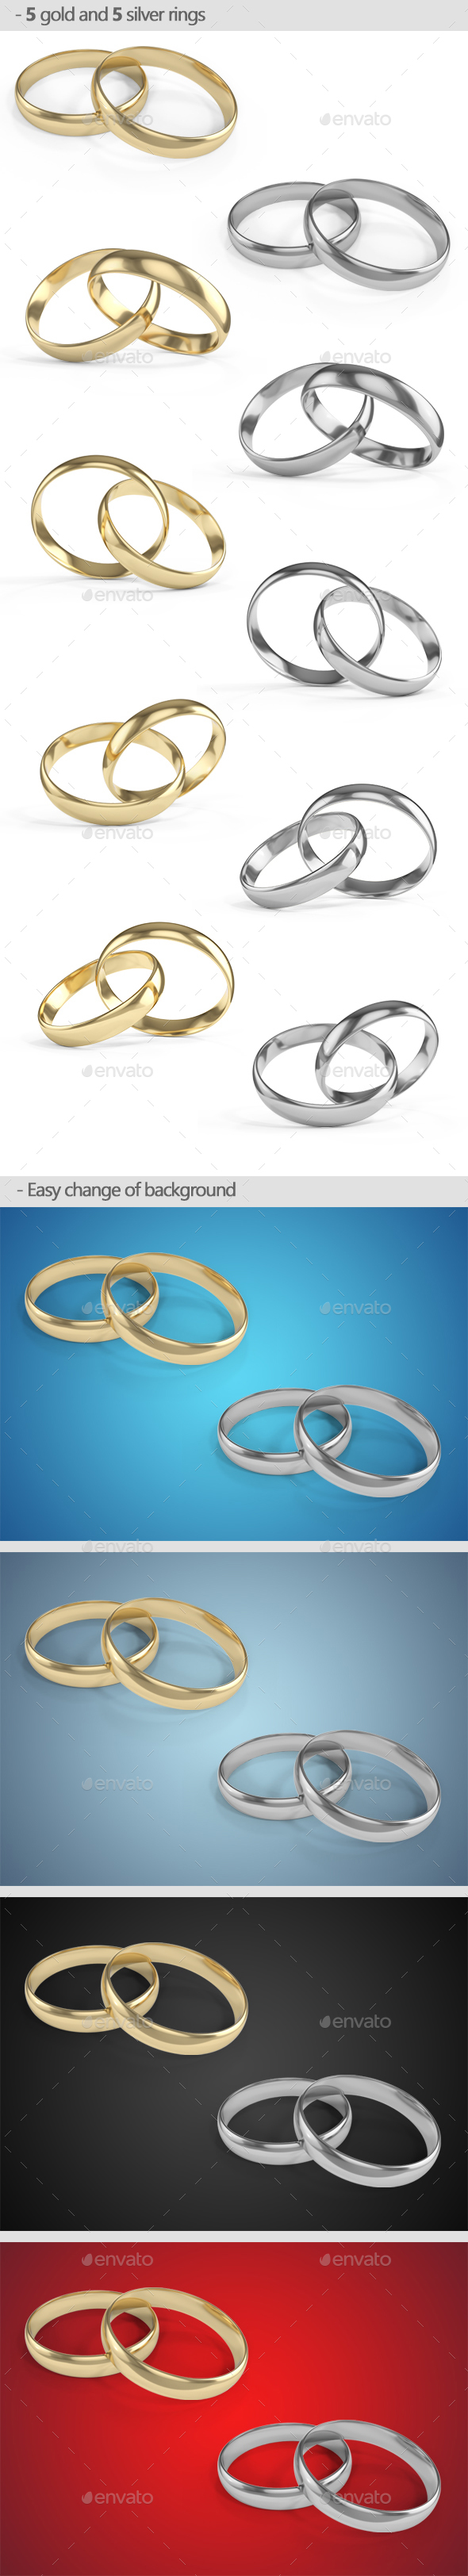 Gold and Silver Rings - Objects 3D Renders